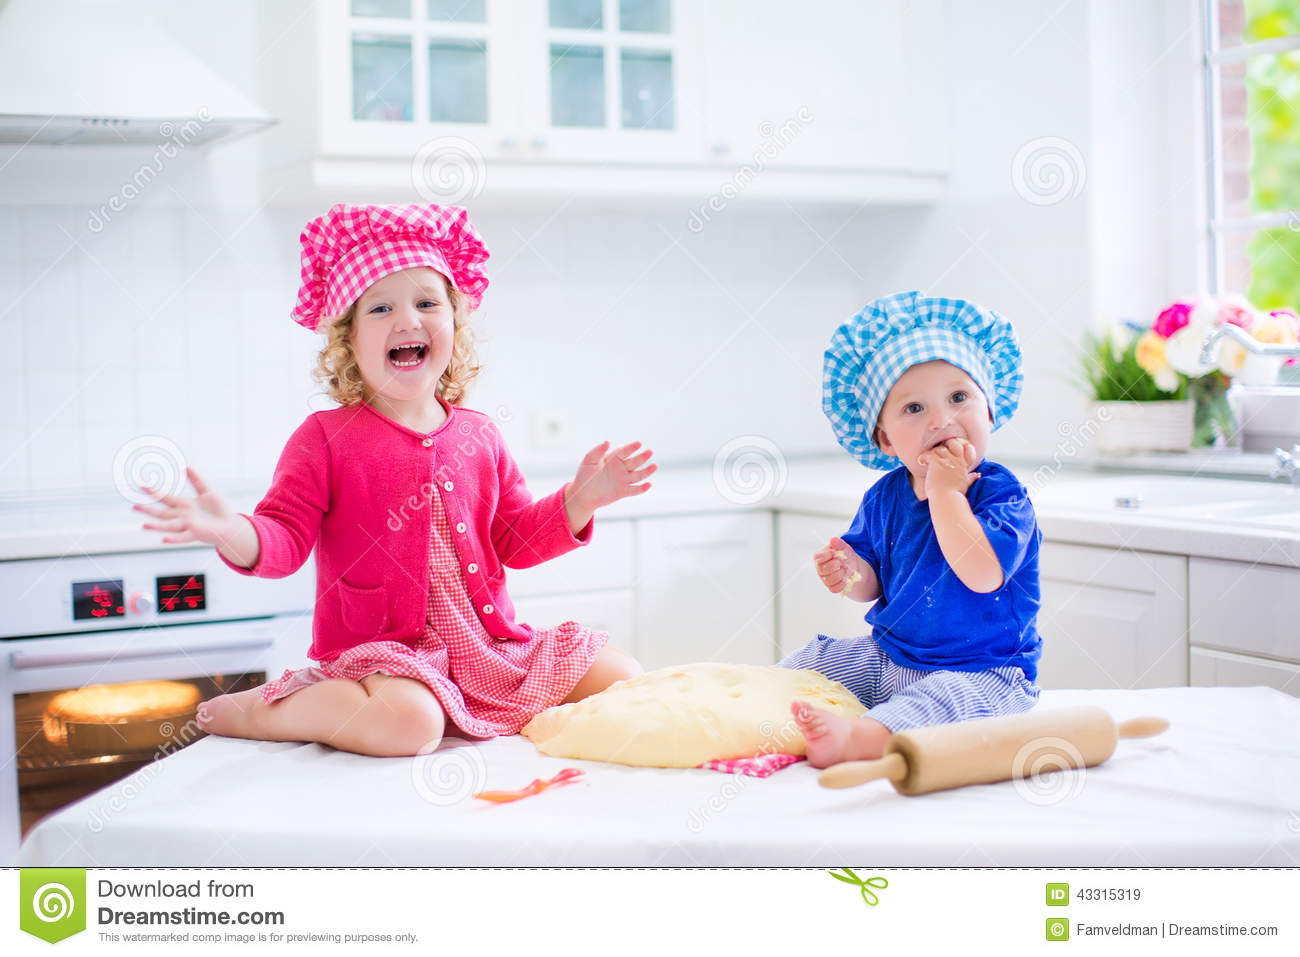 Furniture Puns Kids Baking Pie Stock Image Image Of Chef Little Child